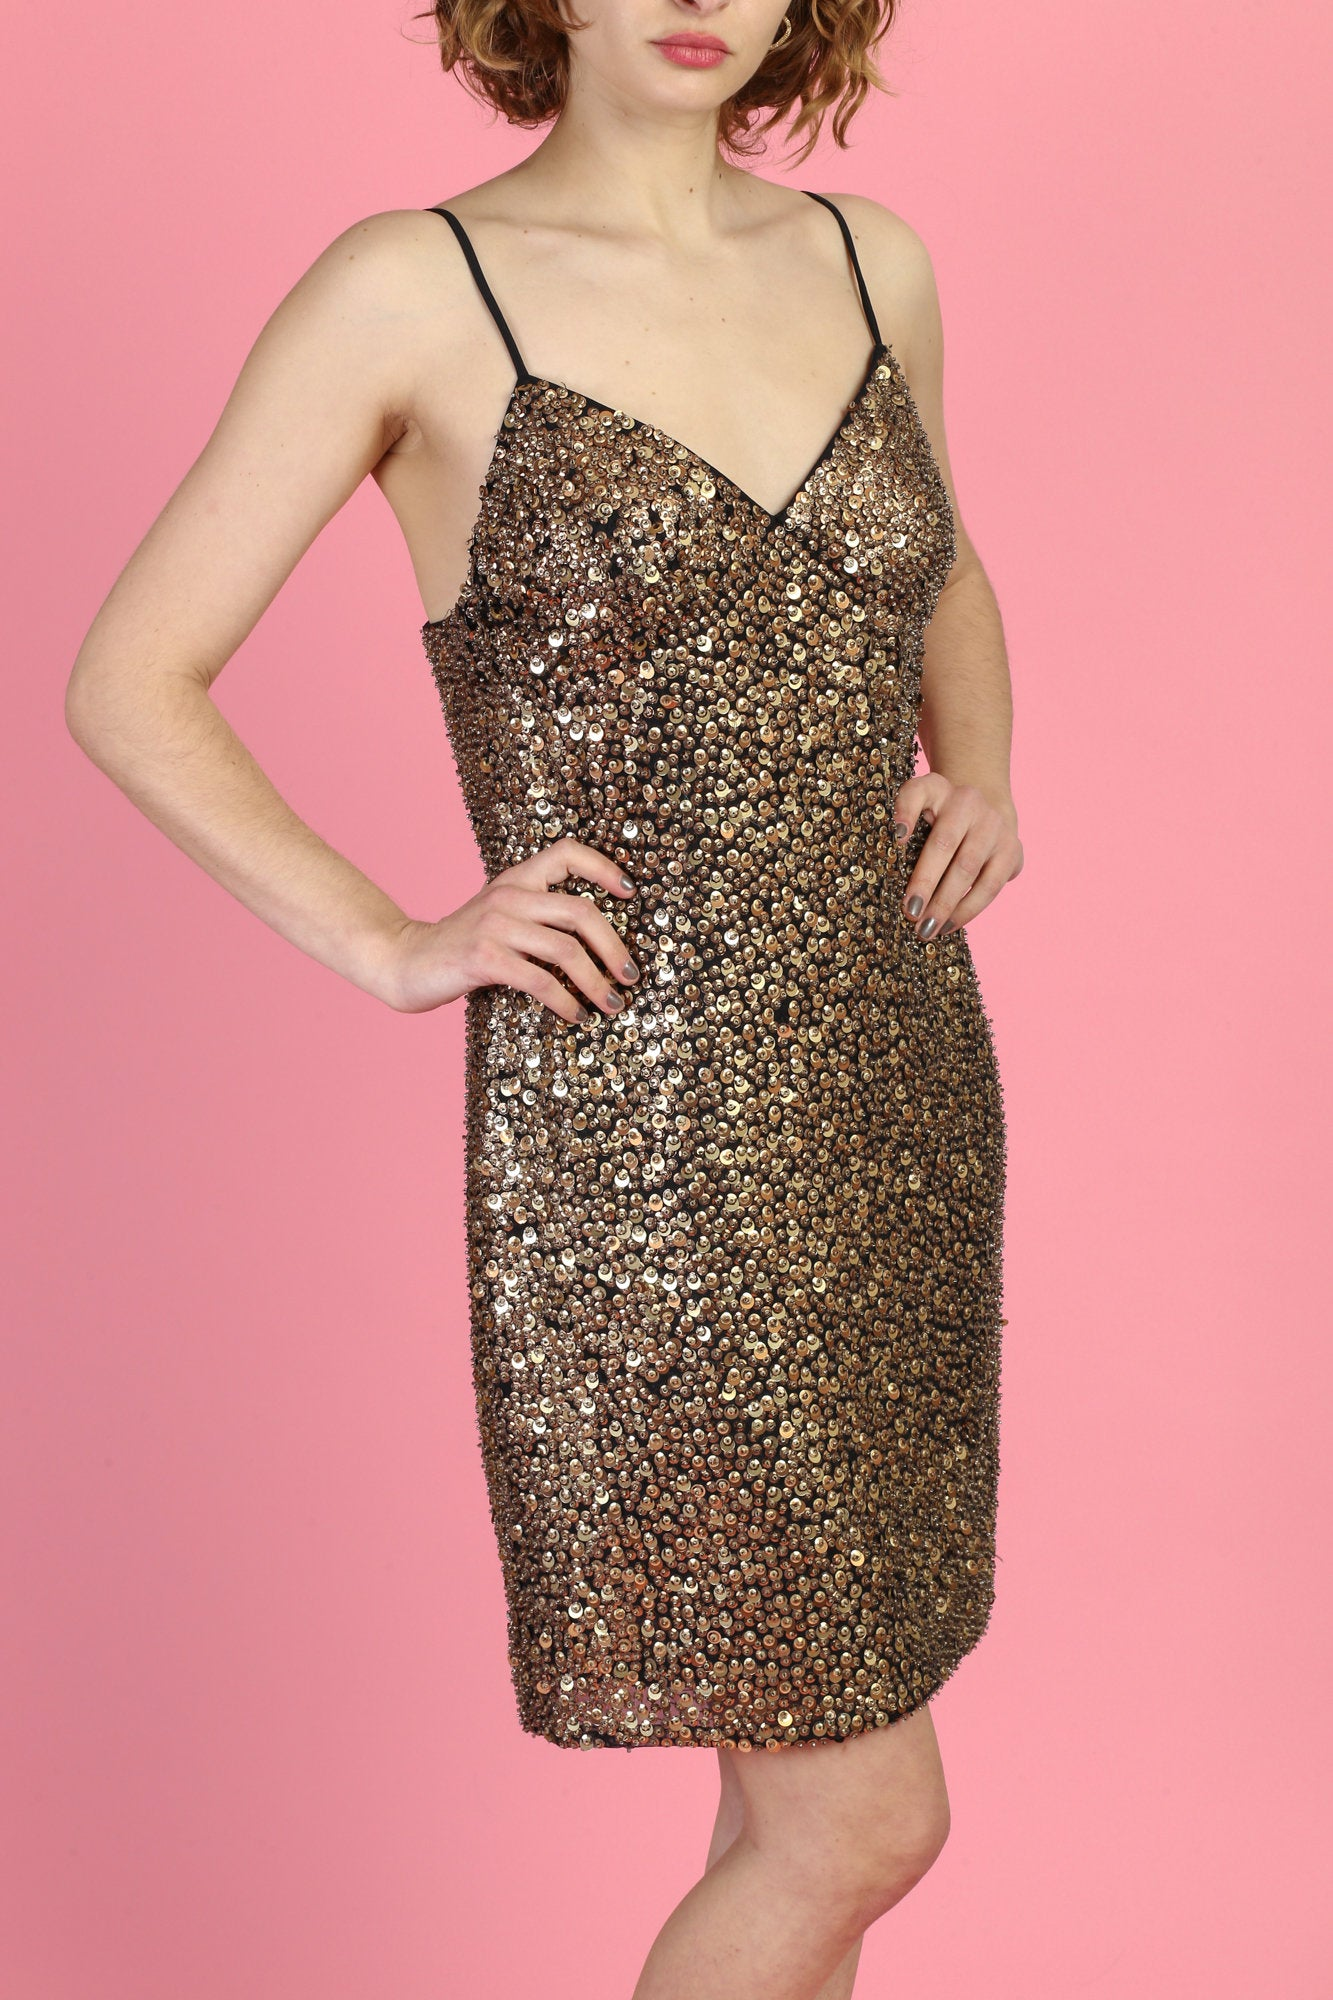 Alberto Makali Gold Beaded Mini Dress - Large, 12